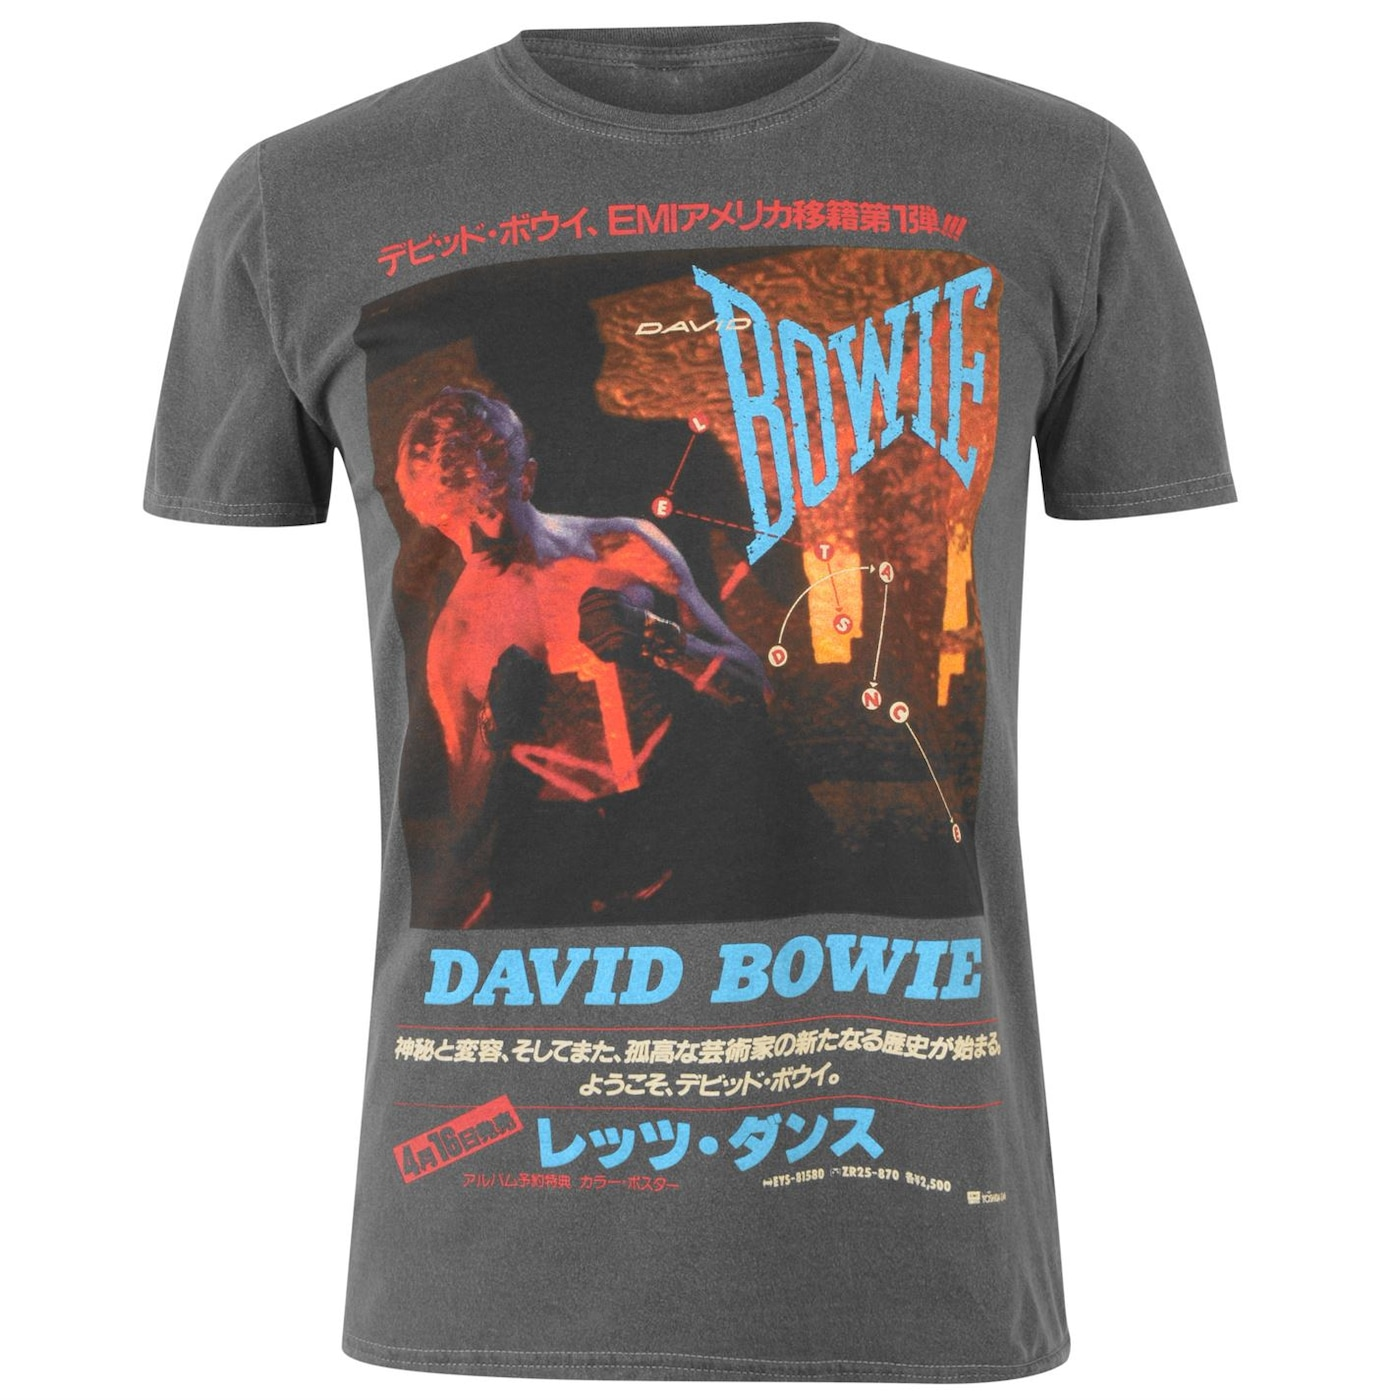 Official Vintage Band T Shirt David Bowie